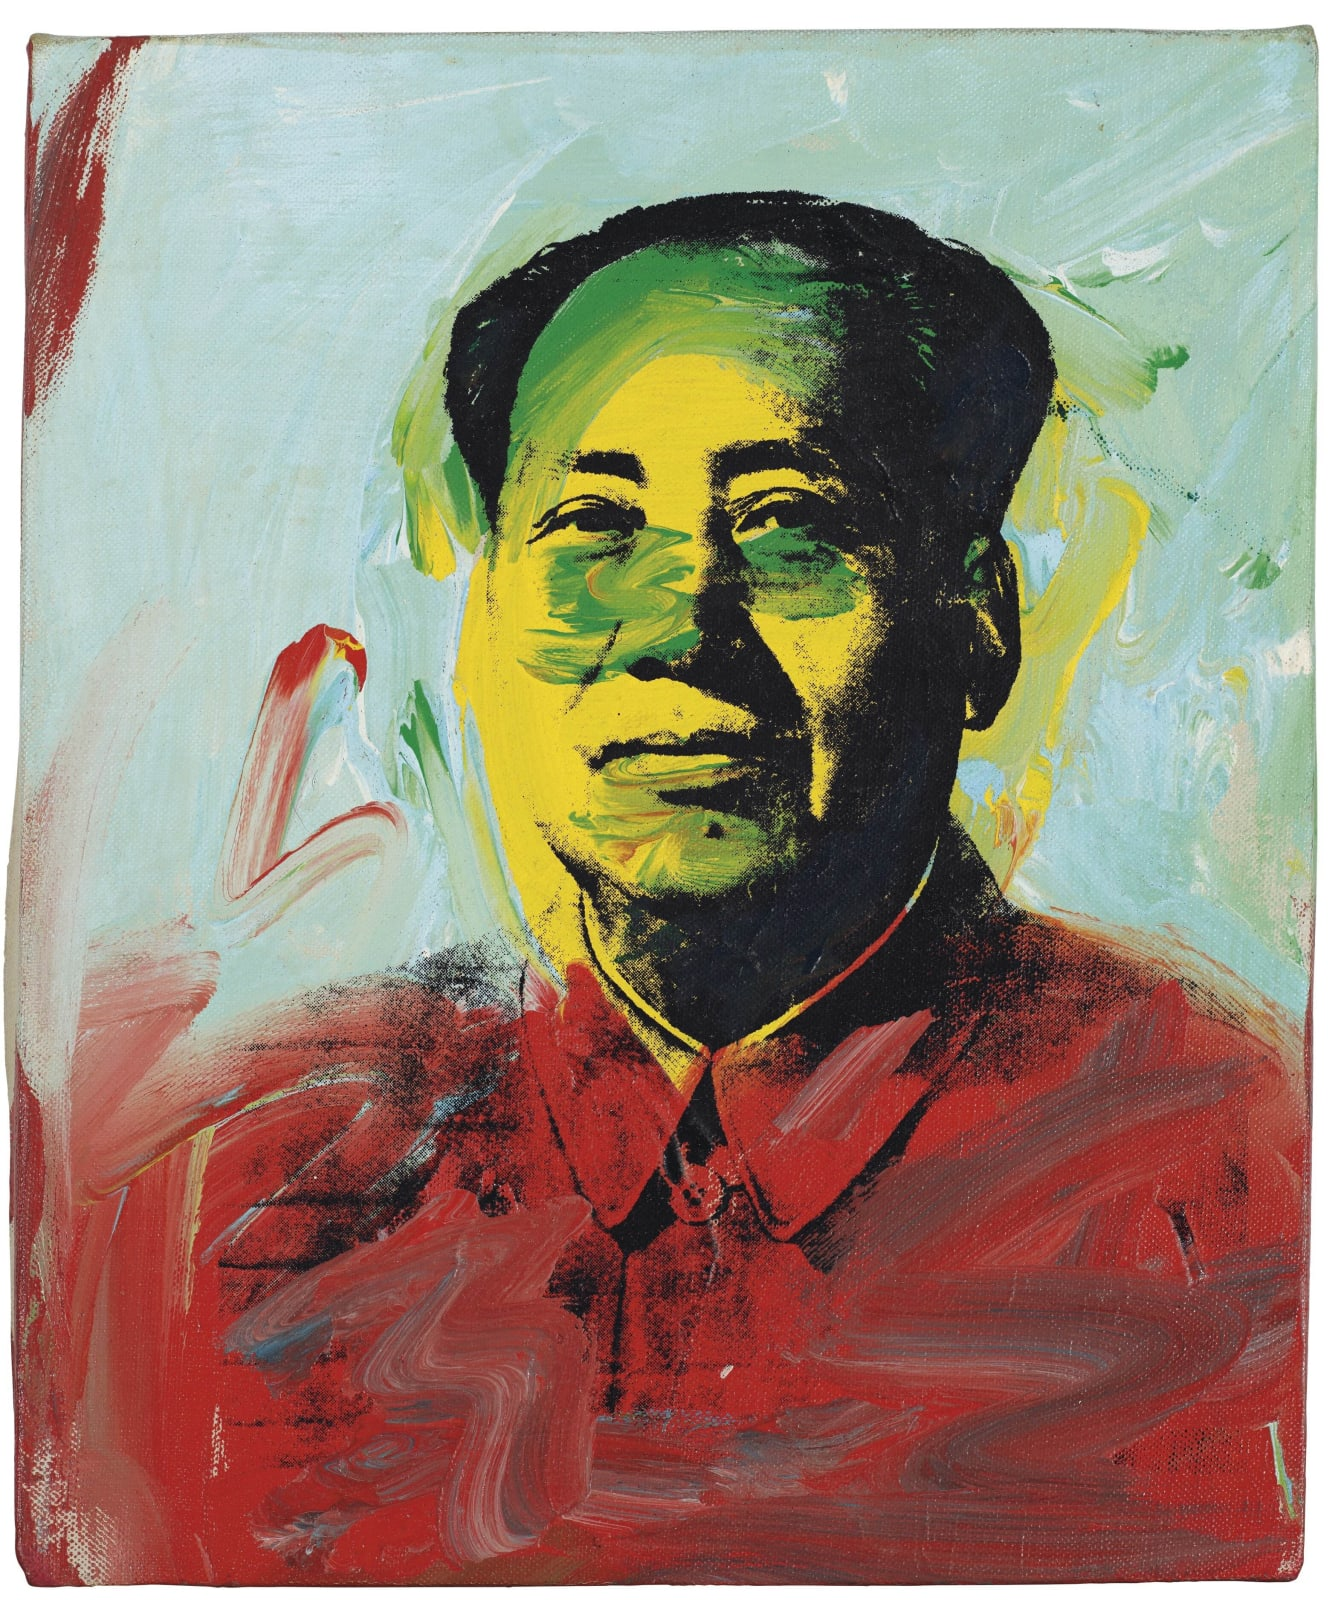 Andy Warhol Mao 1973 acrylic and silkscreen ink on canvas 12 1/8 x 10 1/8 inches 30.8 x 25.7 cm © The Andy Warhol Foundation for the Visual Arts More Info